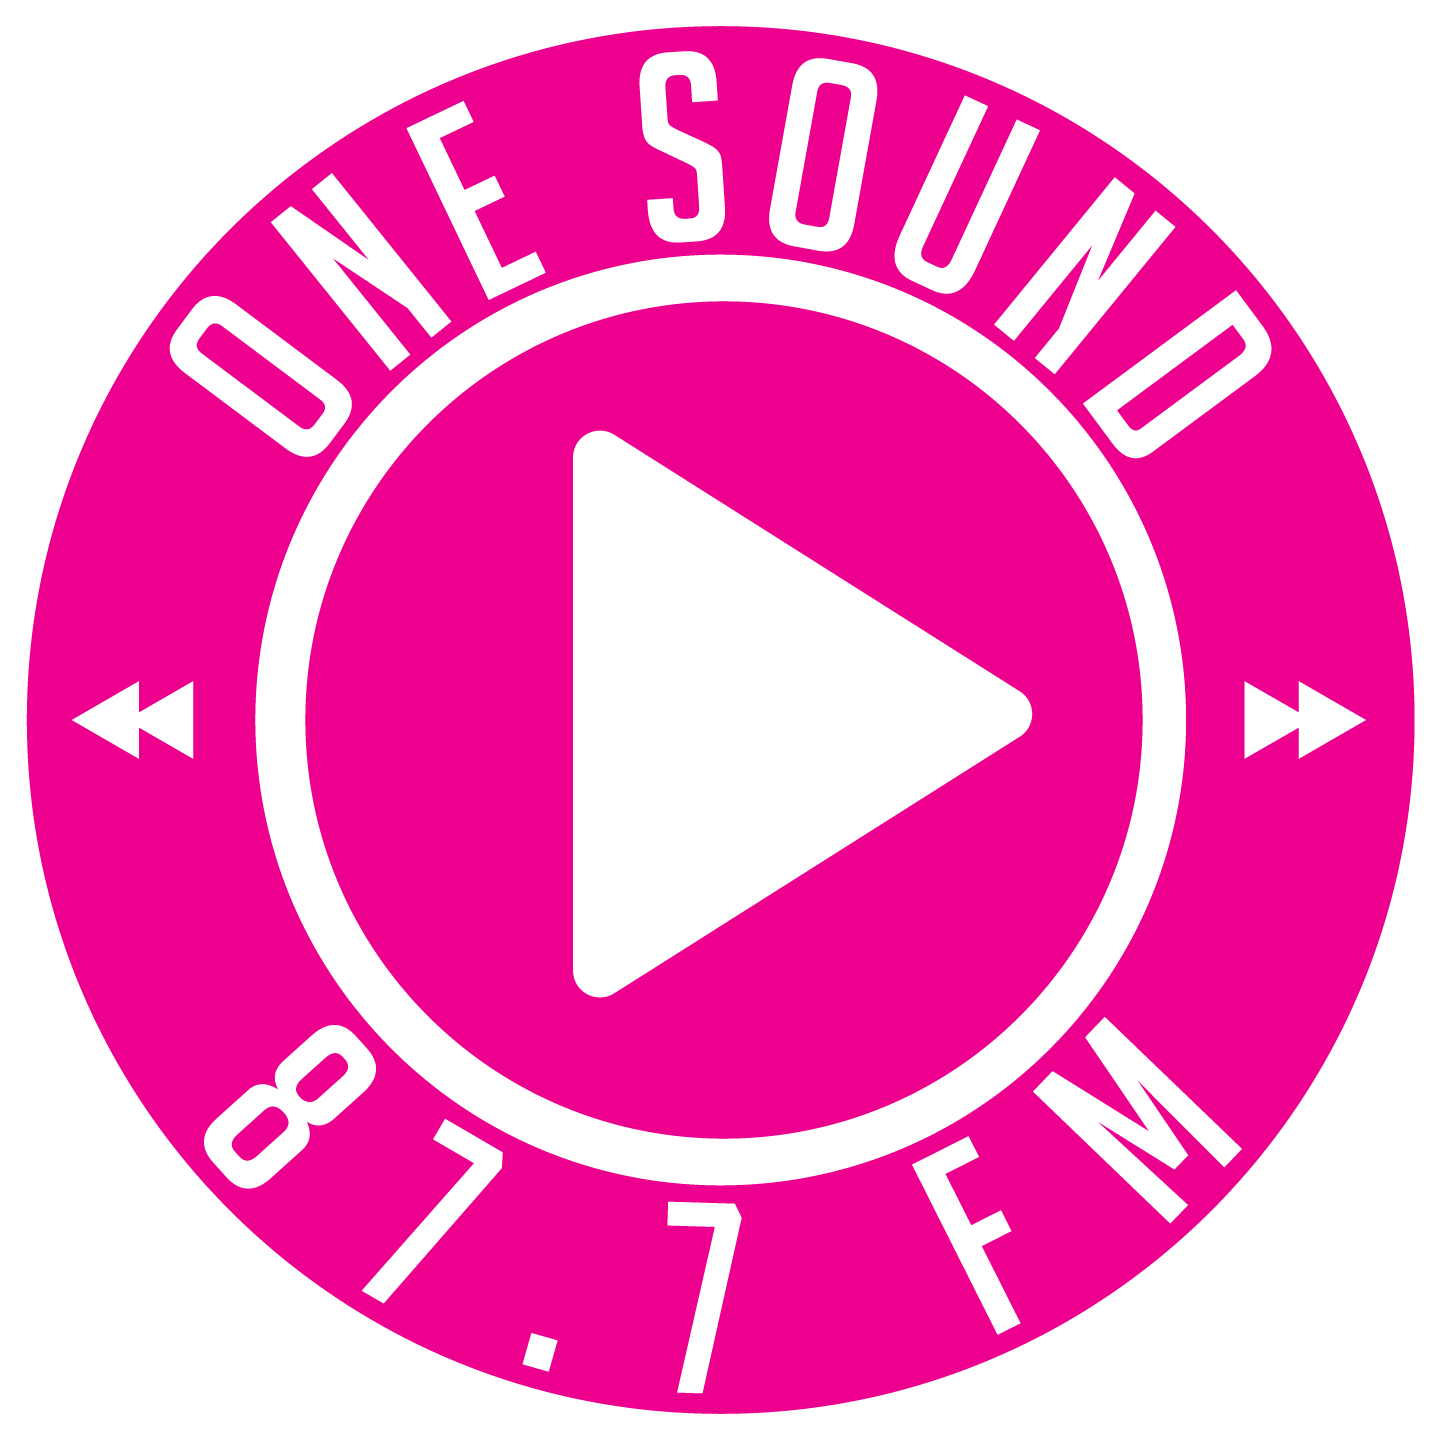 One Sound FM